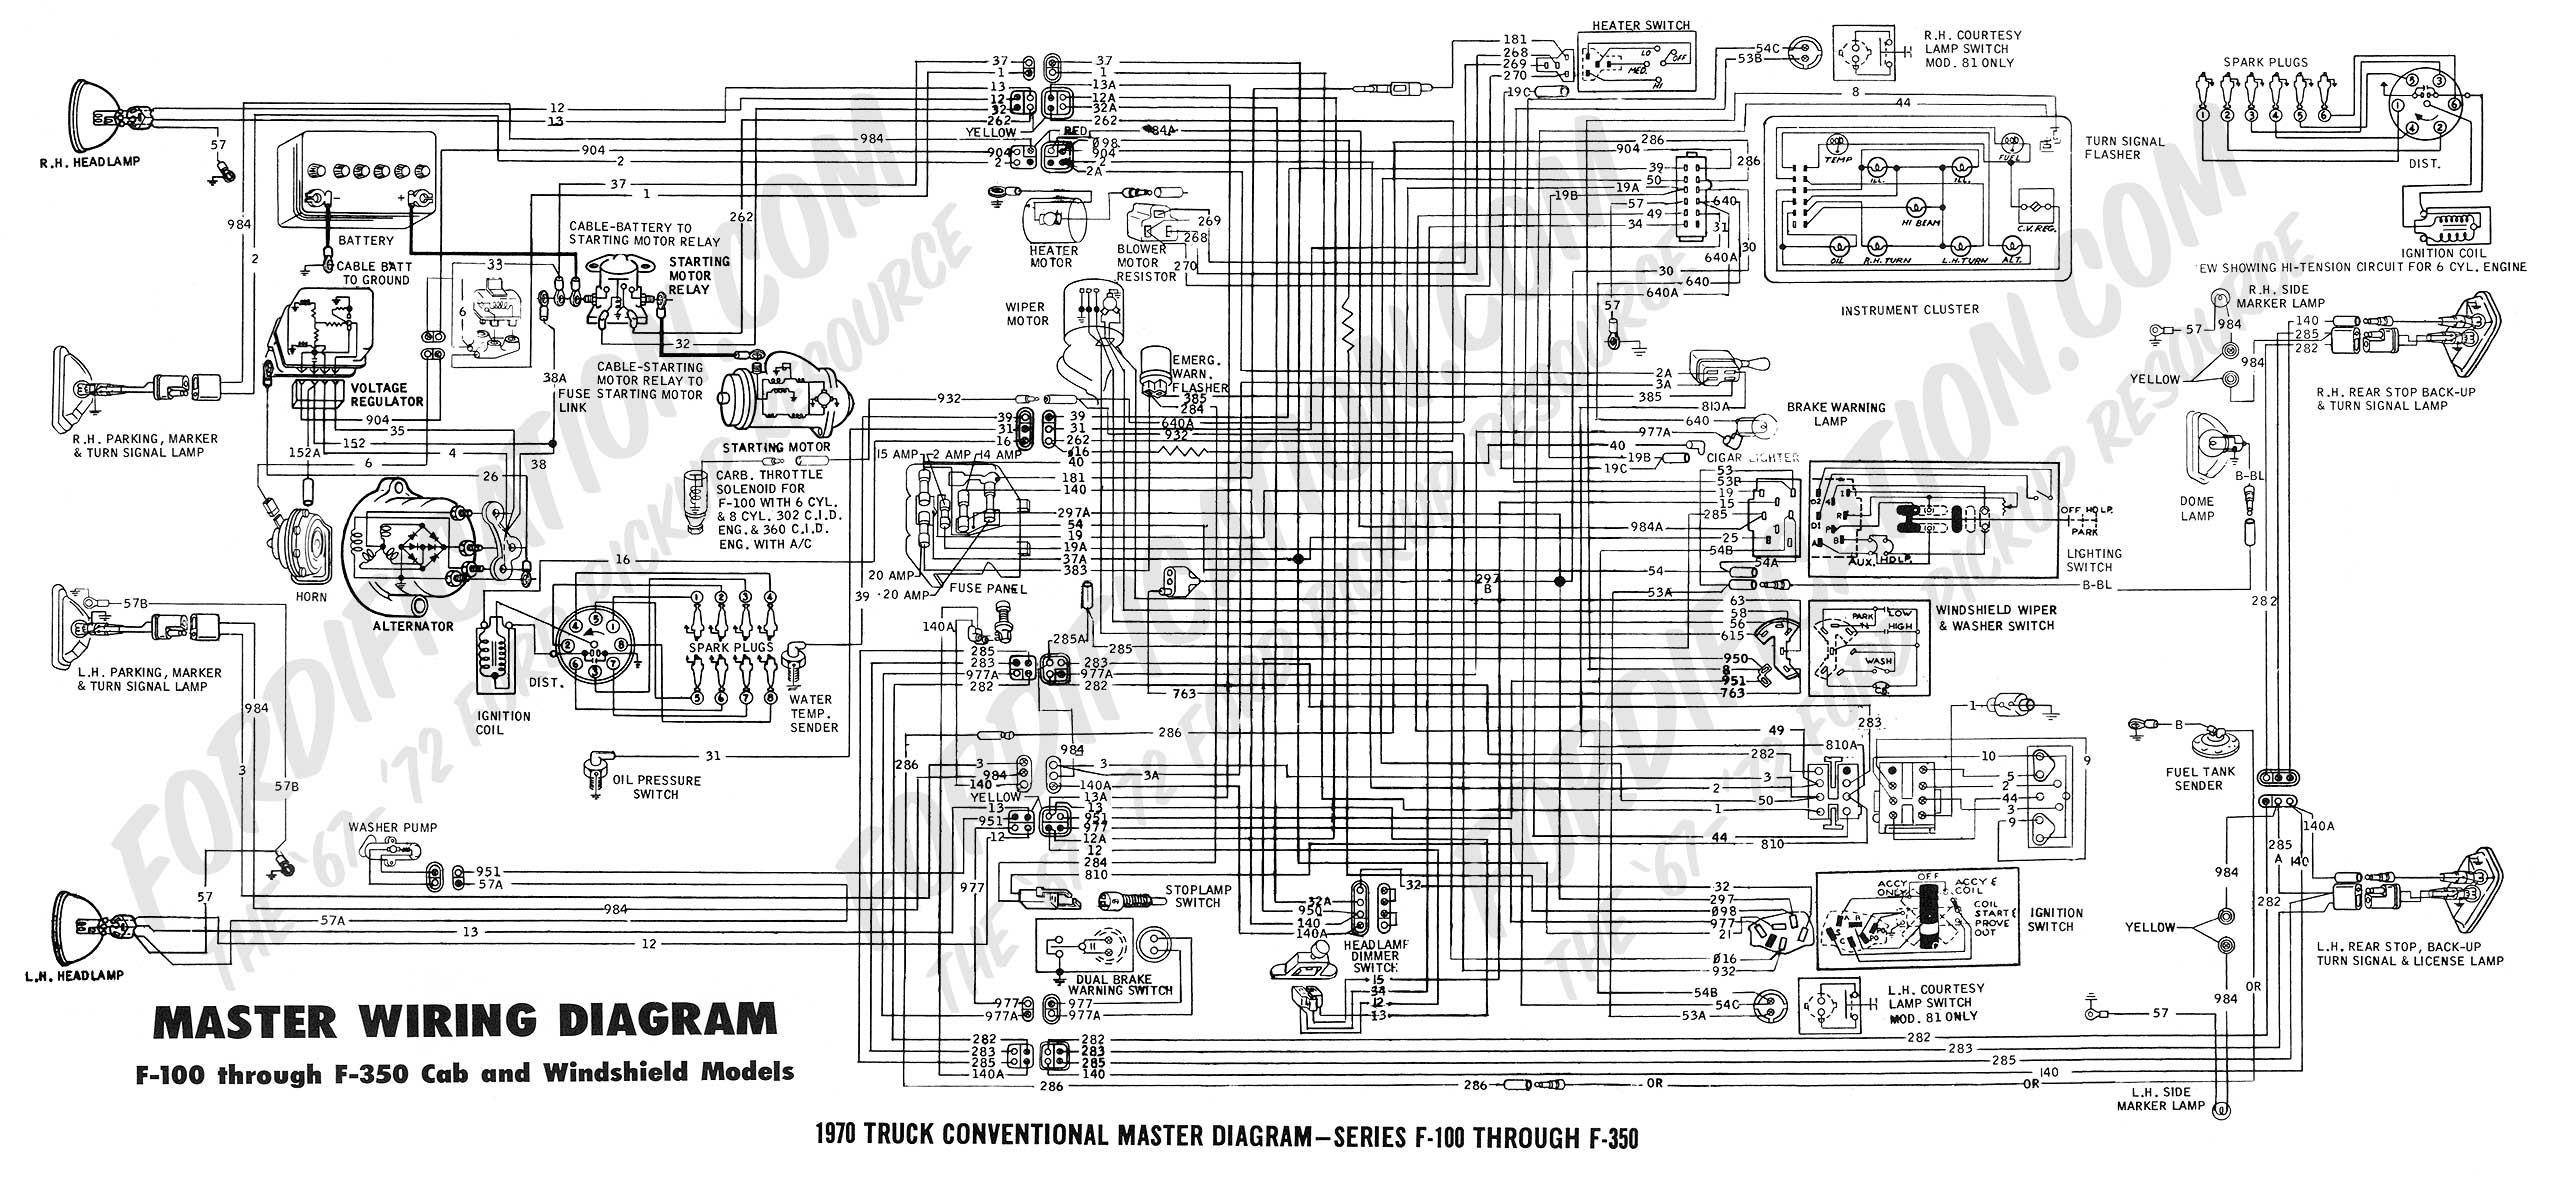 2002 ford f150 wiring diagram 2002 wiring diagrams online